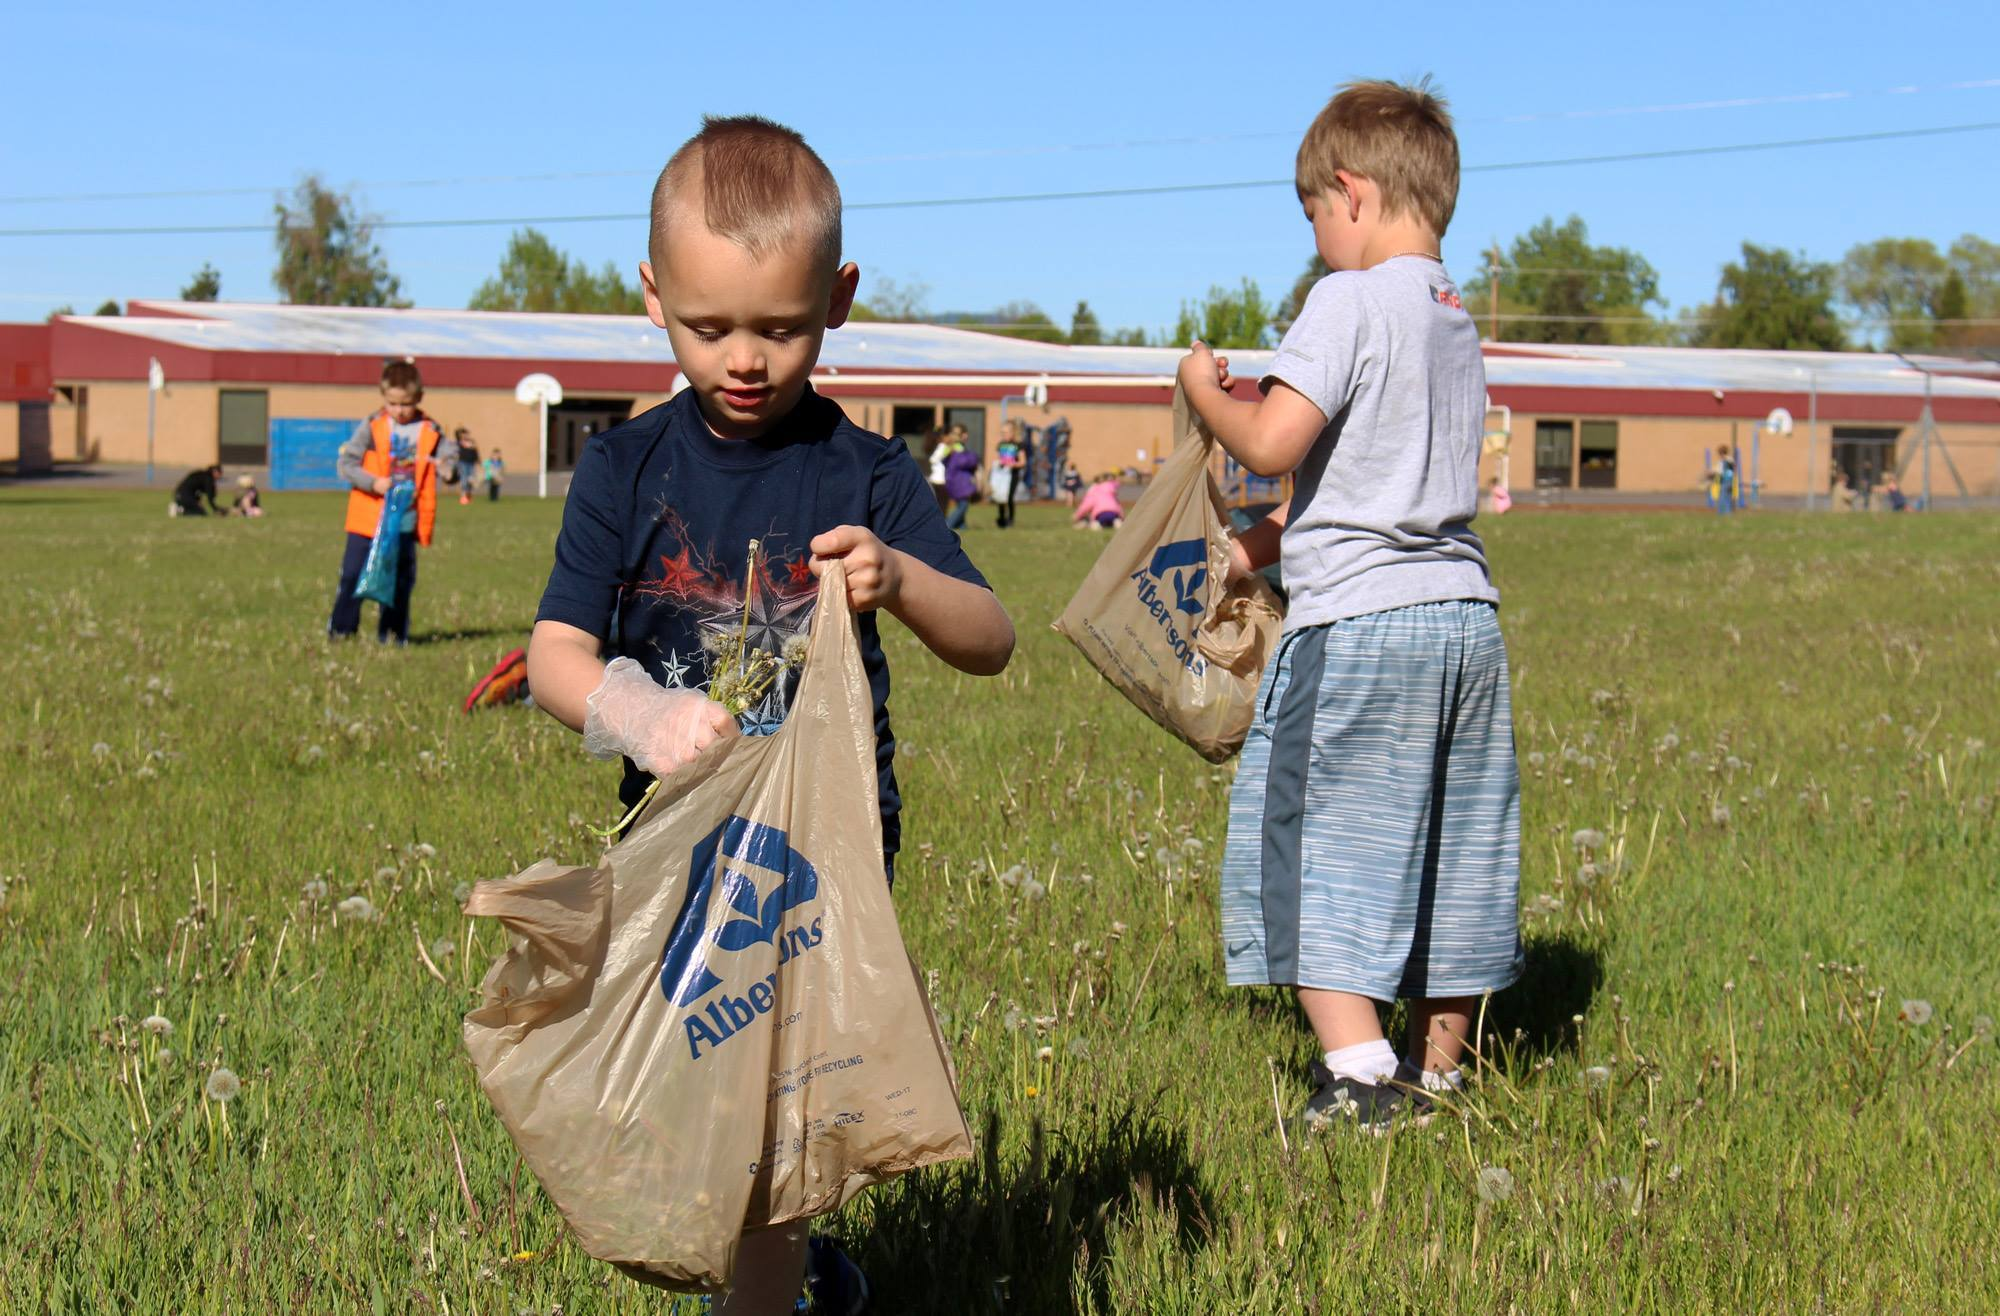 Shasta Elementary kindergarteners pick up litter and pull weeds on the school grounds during Give Back Day on Thursday, May 18. (Samantha Tipler)